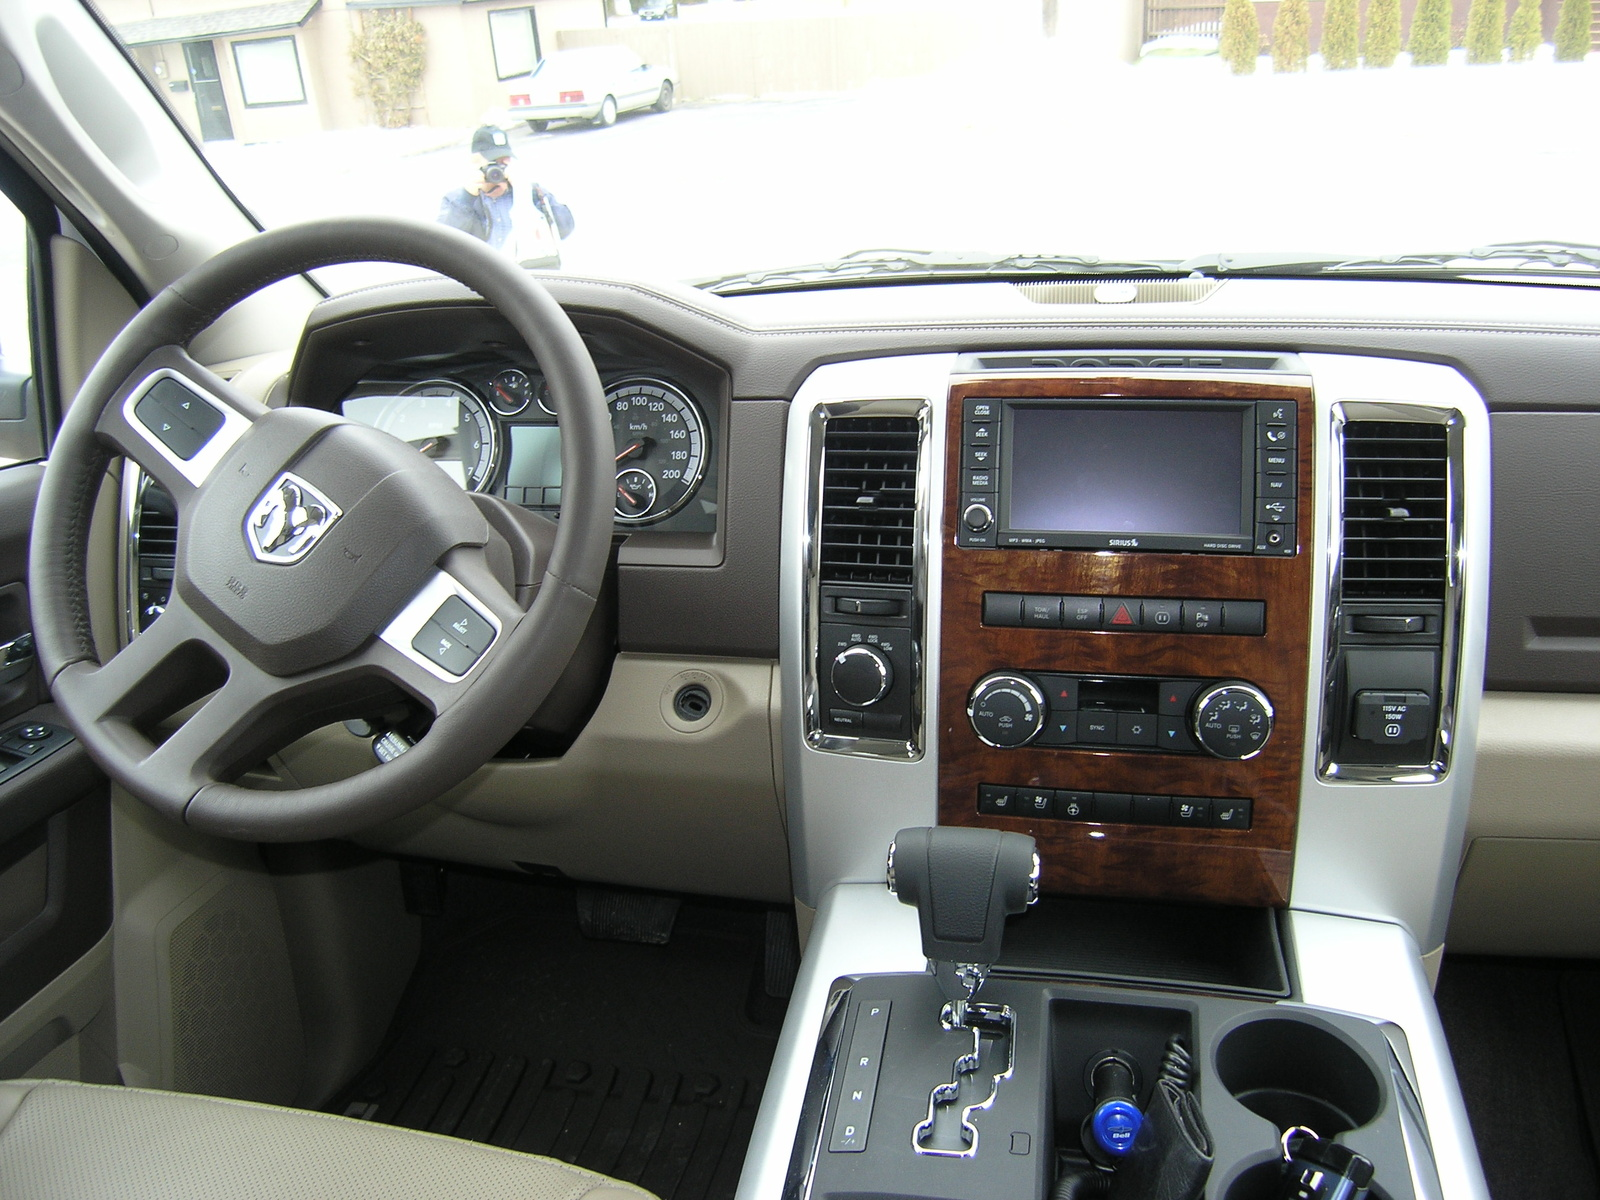 100 Reviews 2010 Dodge Ram 1500 Sport Specs on margojoyocom